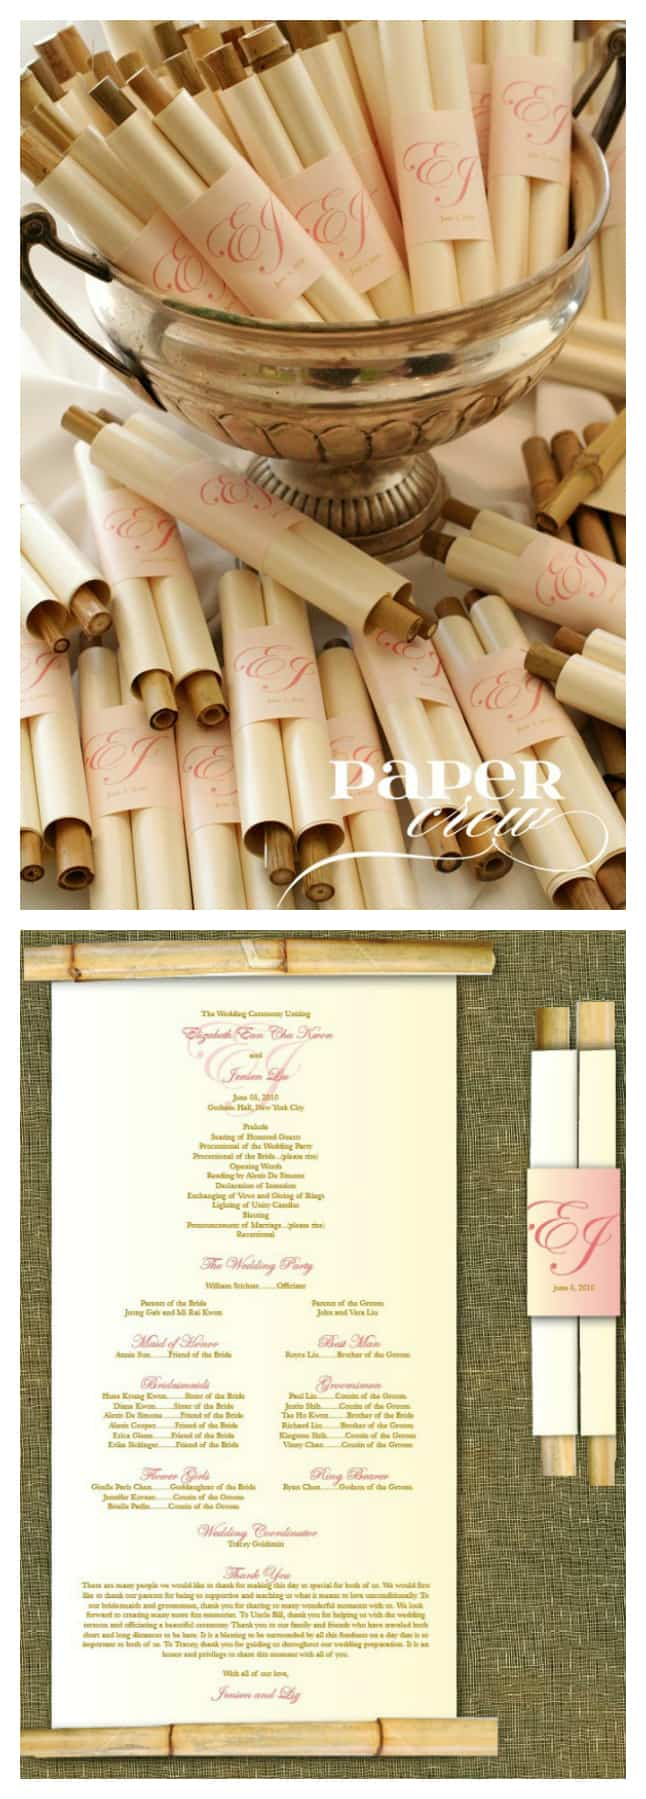 Bamboo scroll destination wedding programs